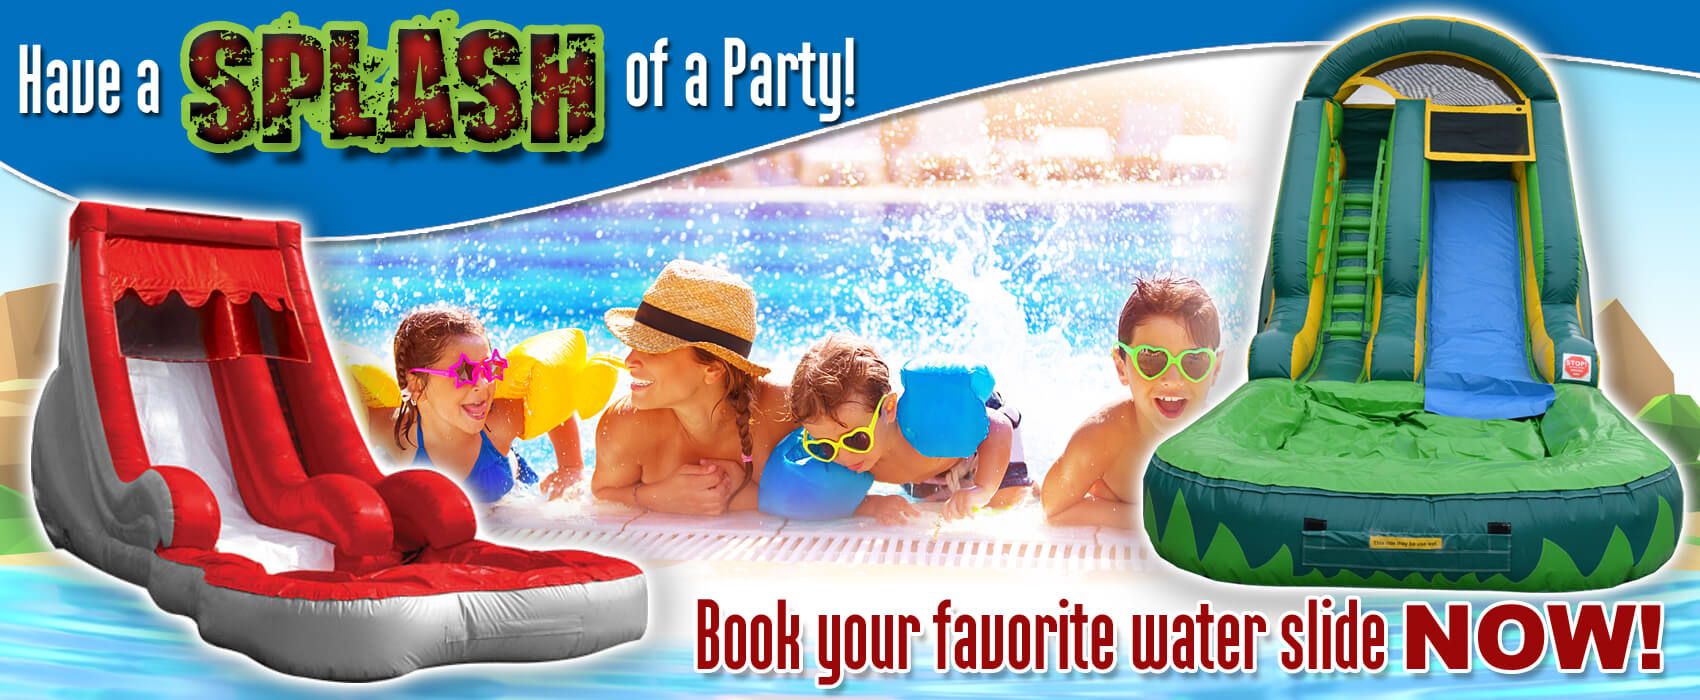 New-Water-Slide-Party-1b